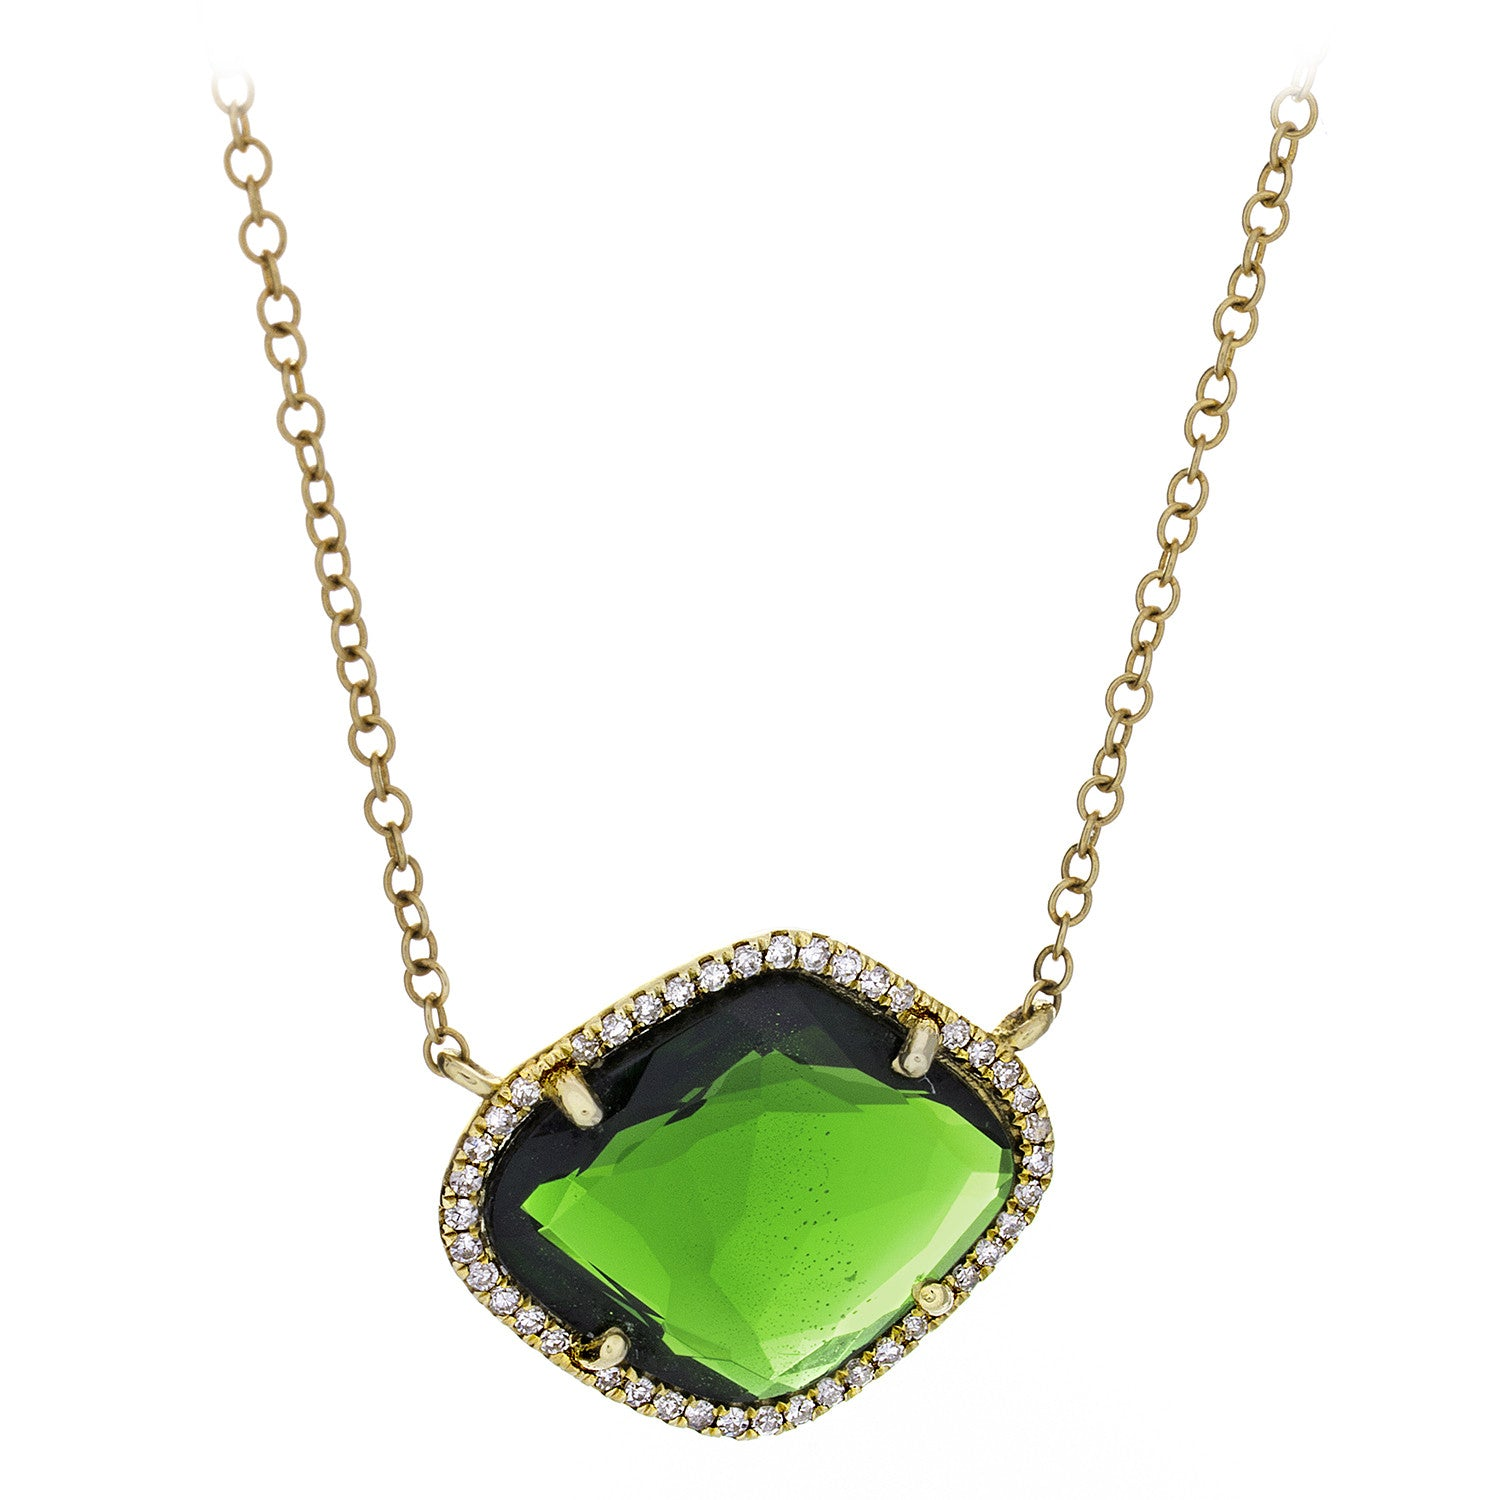 Tsavorite Garnet & Pave Diamonds Yellow Gold Necklace - SOLD/CAN BE SPECIAL ORDERED WITH 4-6 WEEKS DELIVERY TIME FRAME